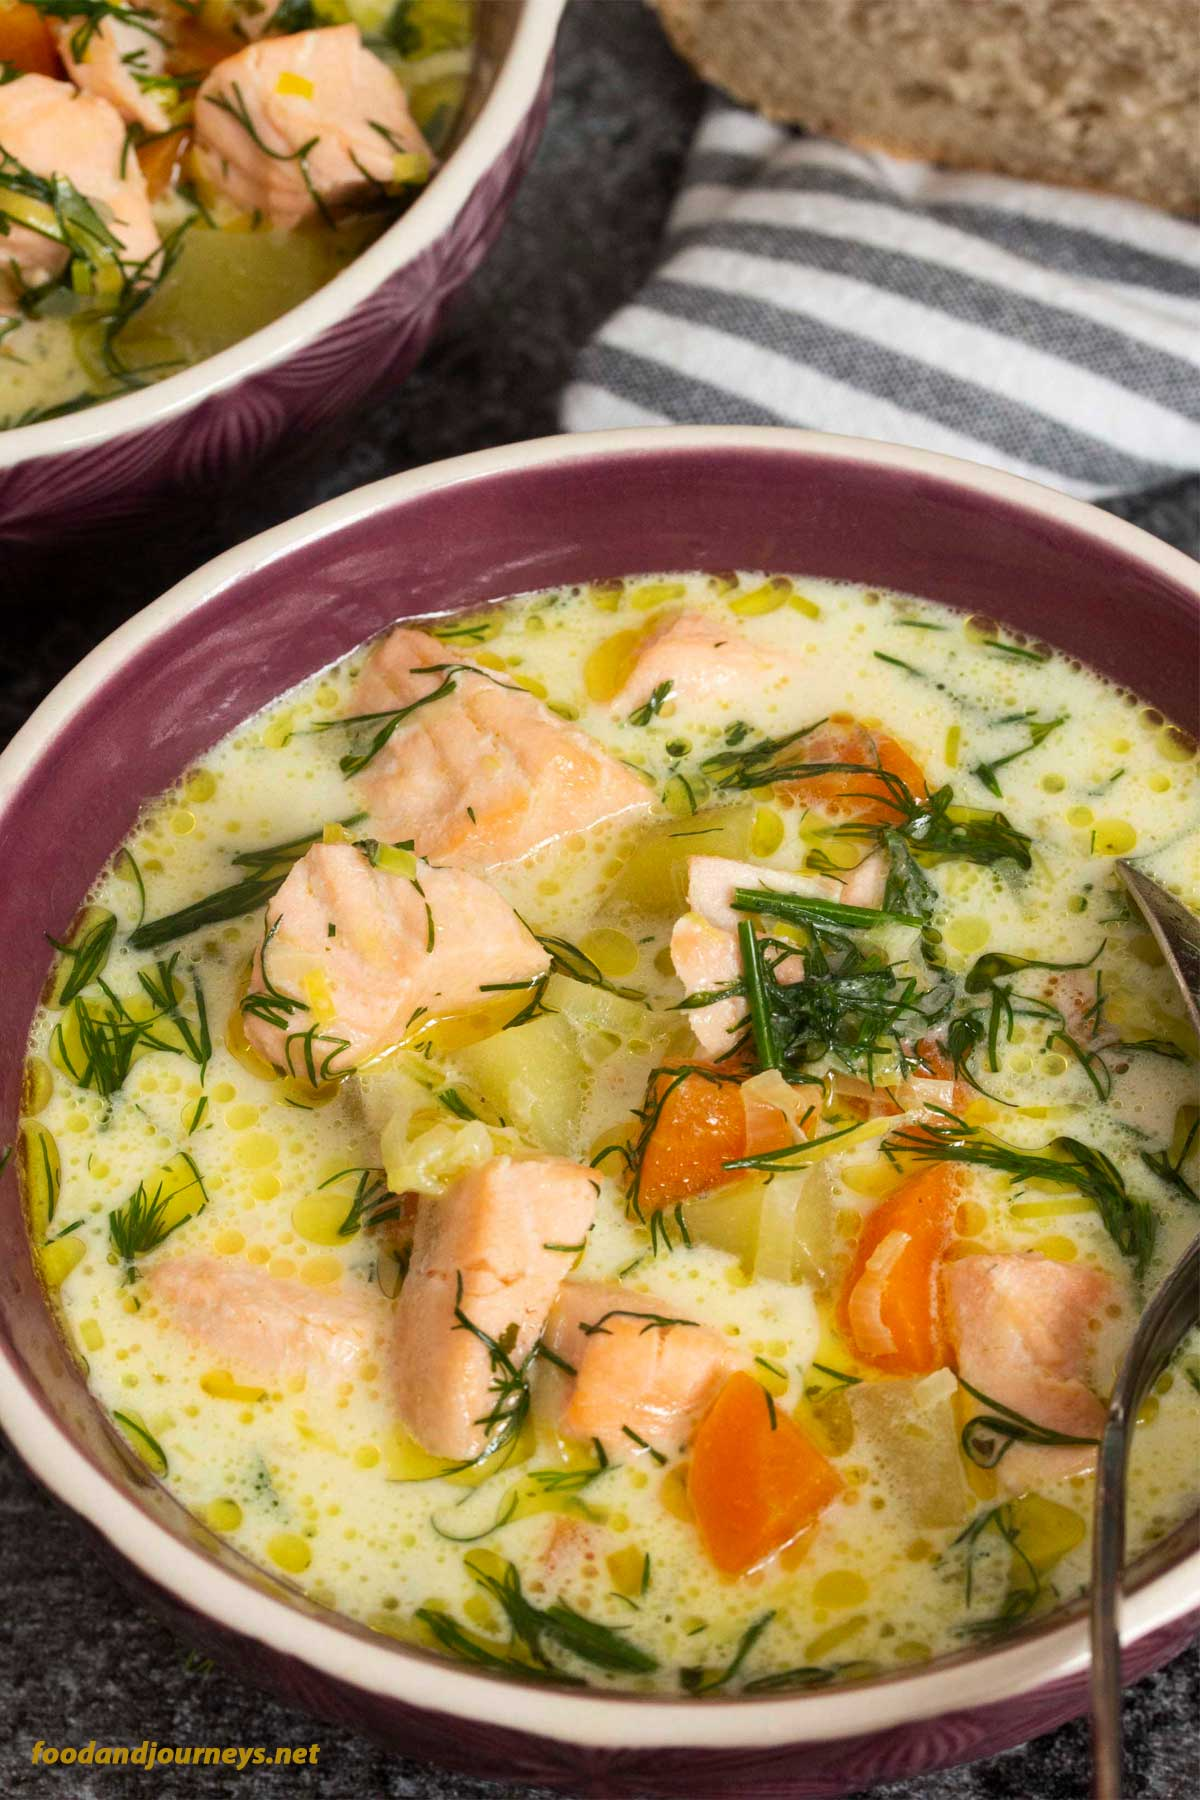 A closer shot of a bowl of Finnish Salmon Soup (Lohikeitto), focusing on the bits of salmon and vegetables in the soup.